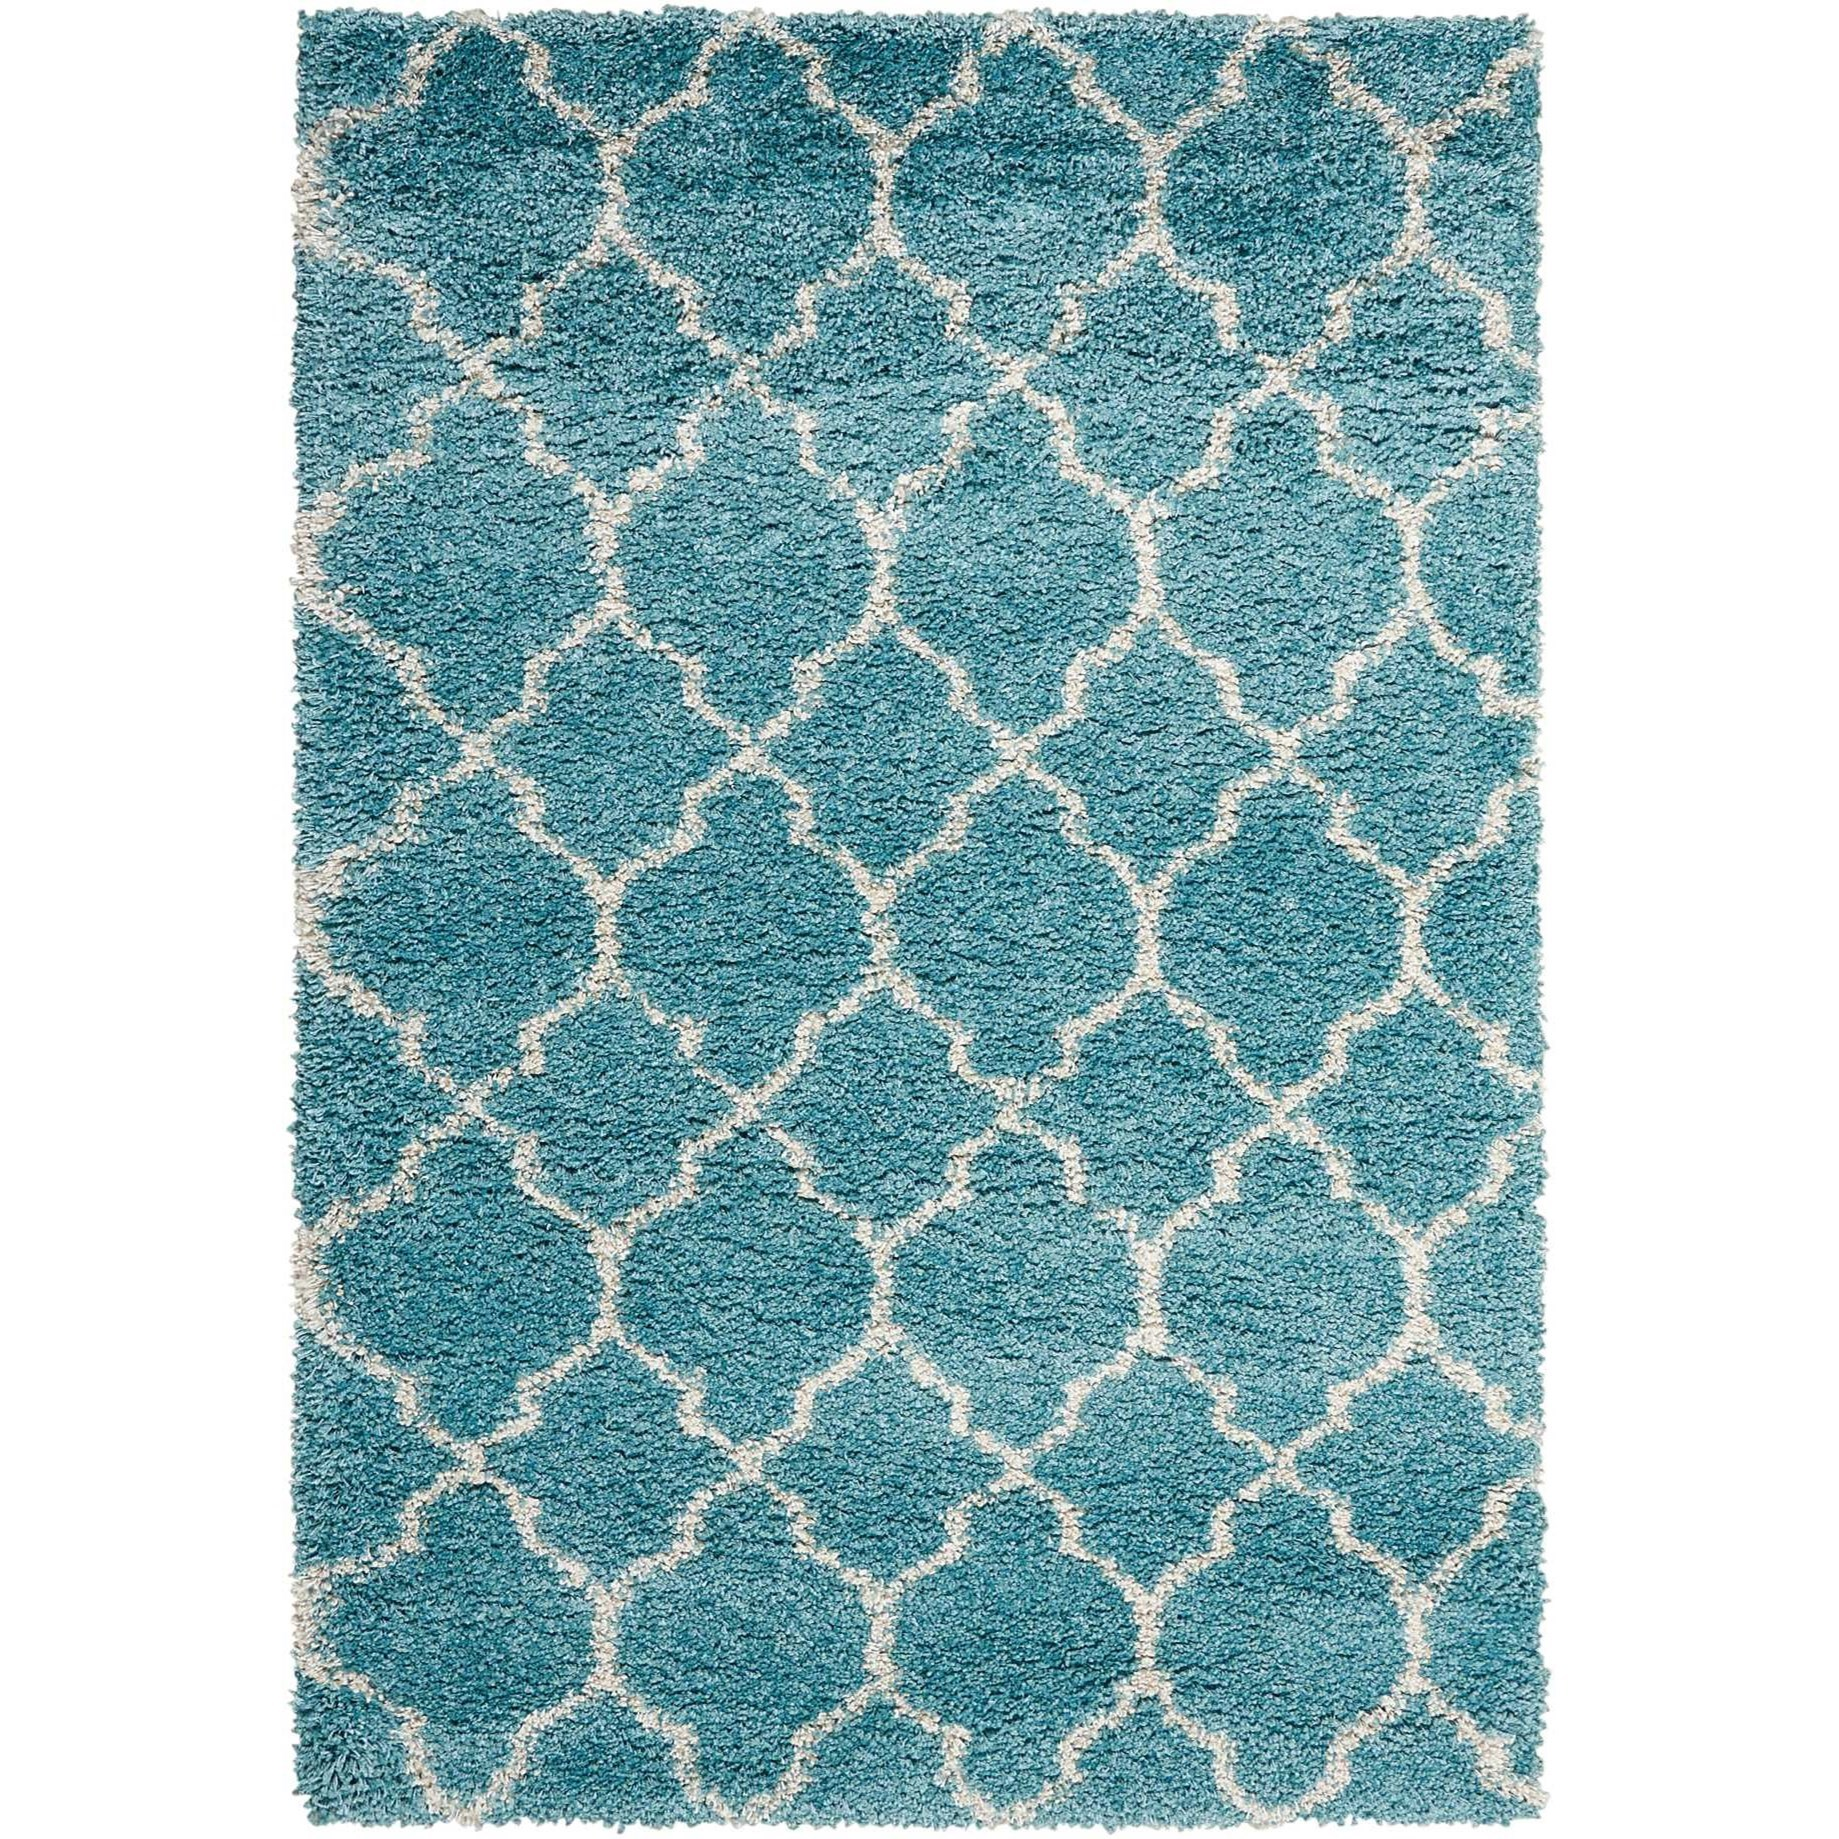 "Amore 3'11"" x 5'11"" Aqua Rectangle Rug by Nourison at Home Collections Furniture"